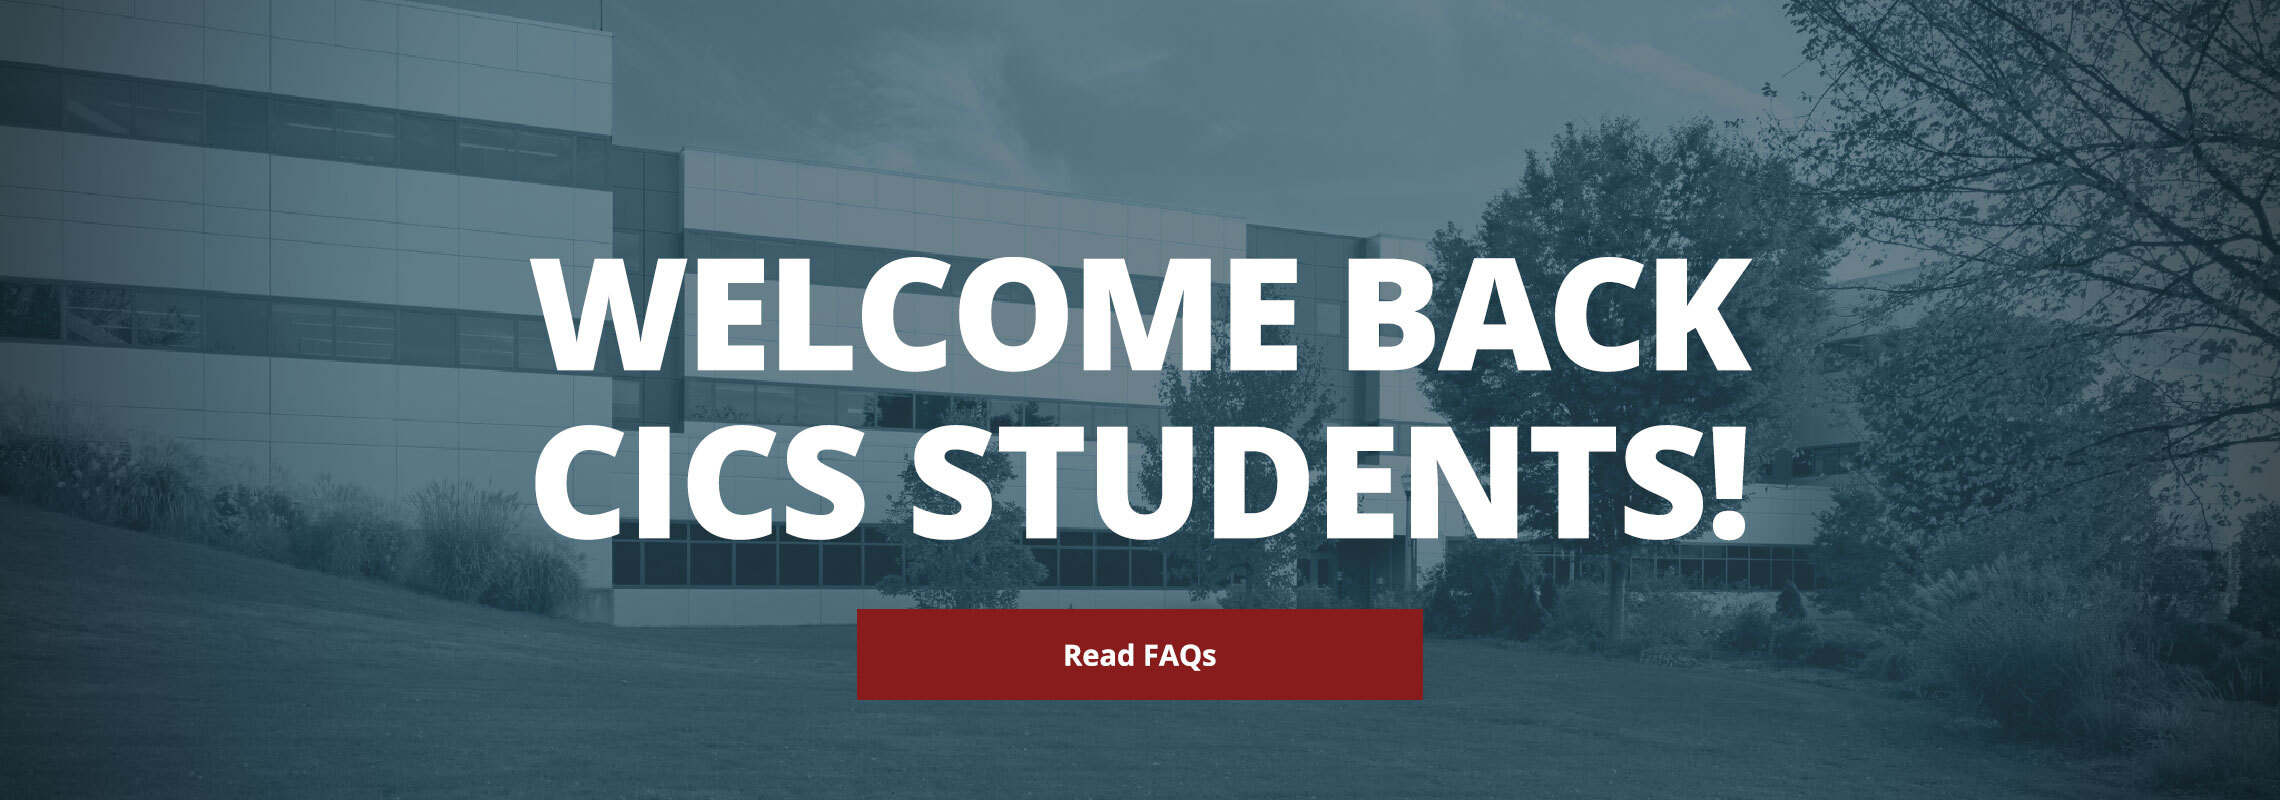 Welcome Back CICS Students!